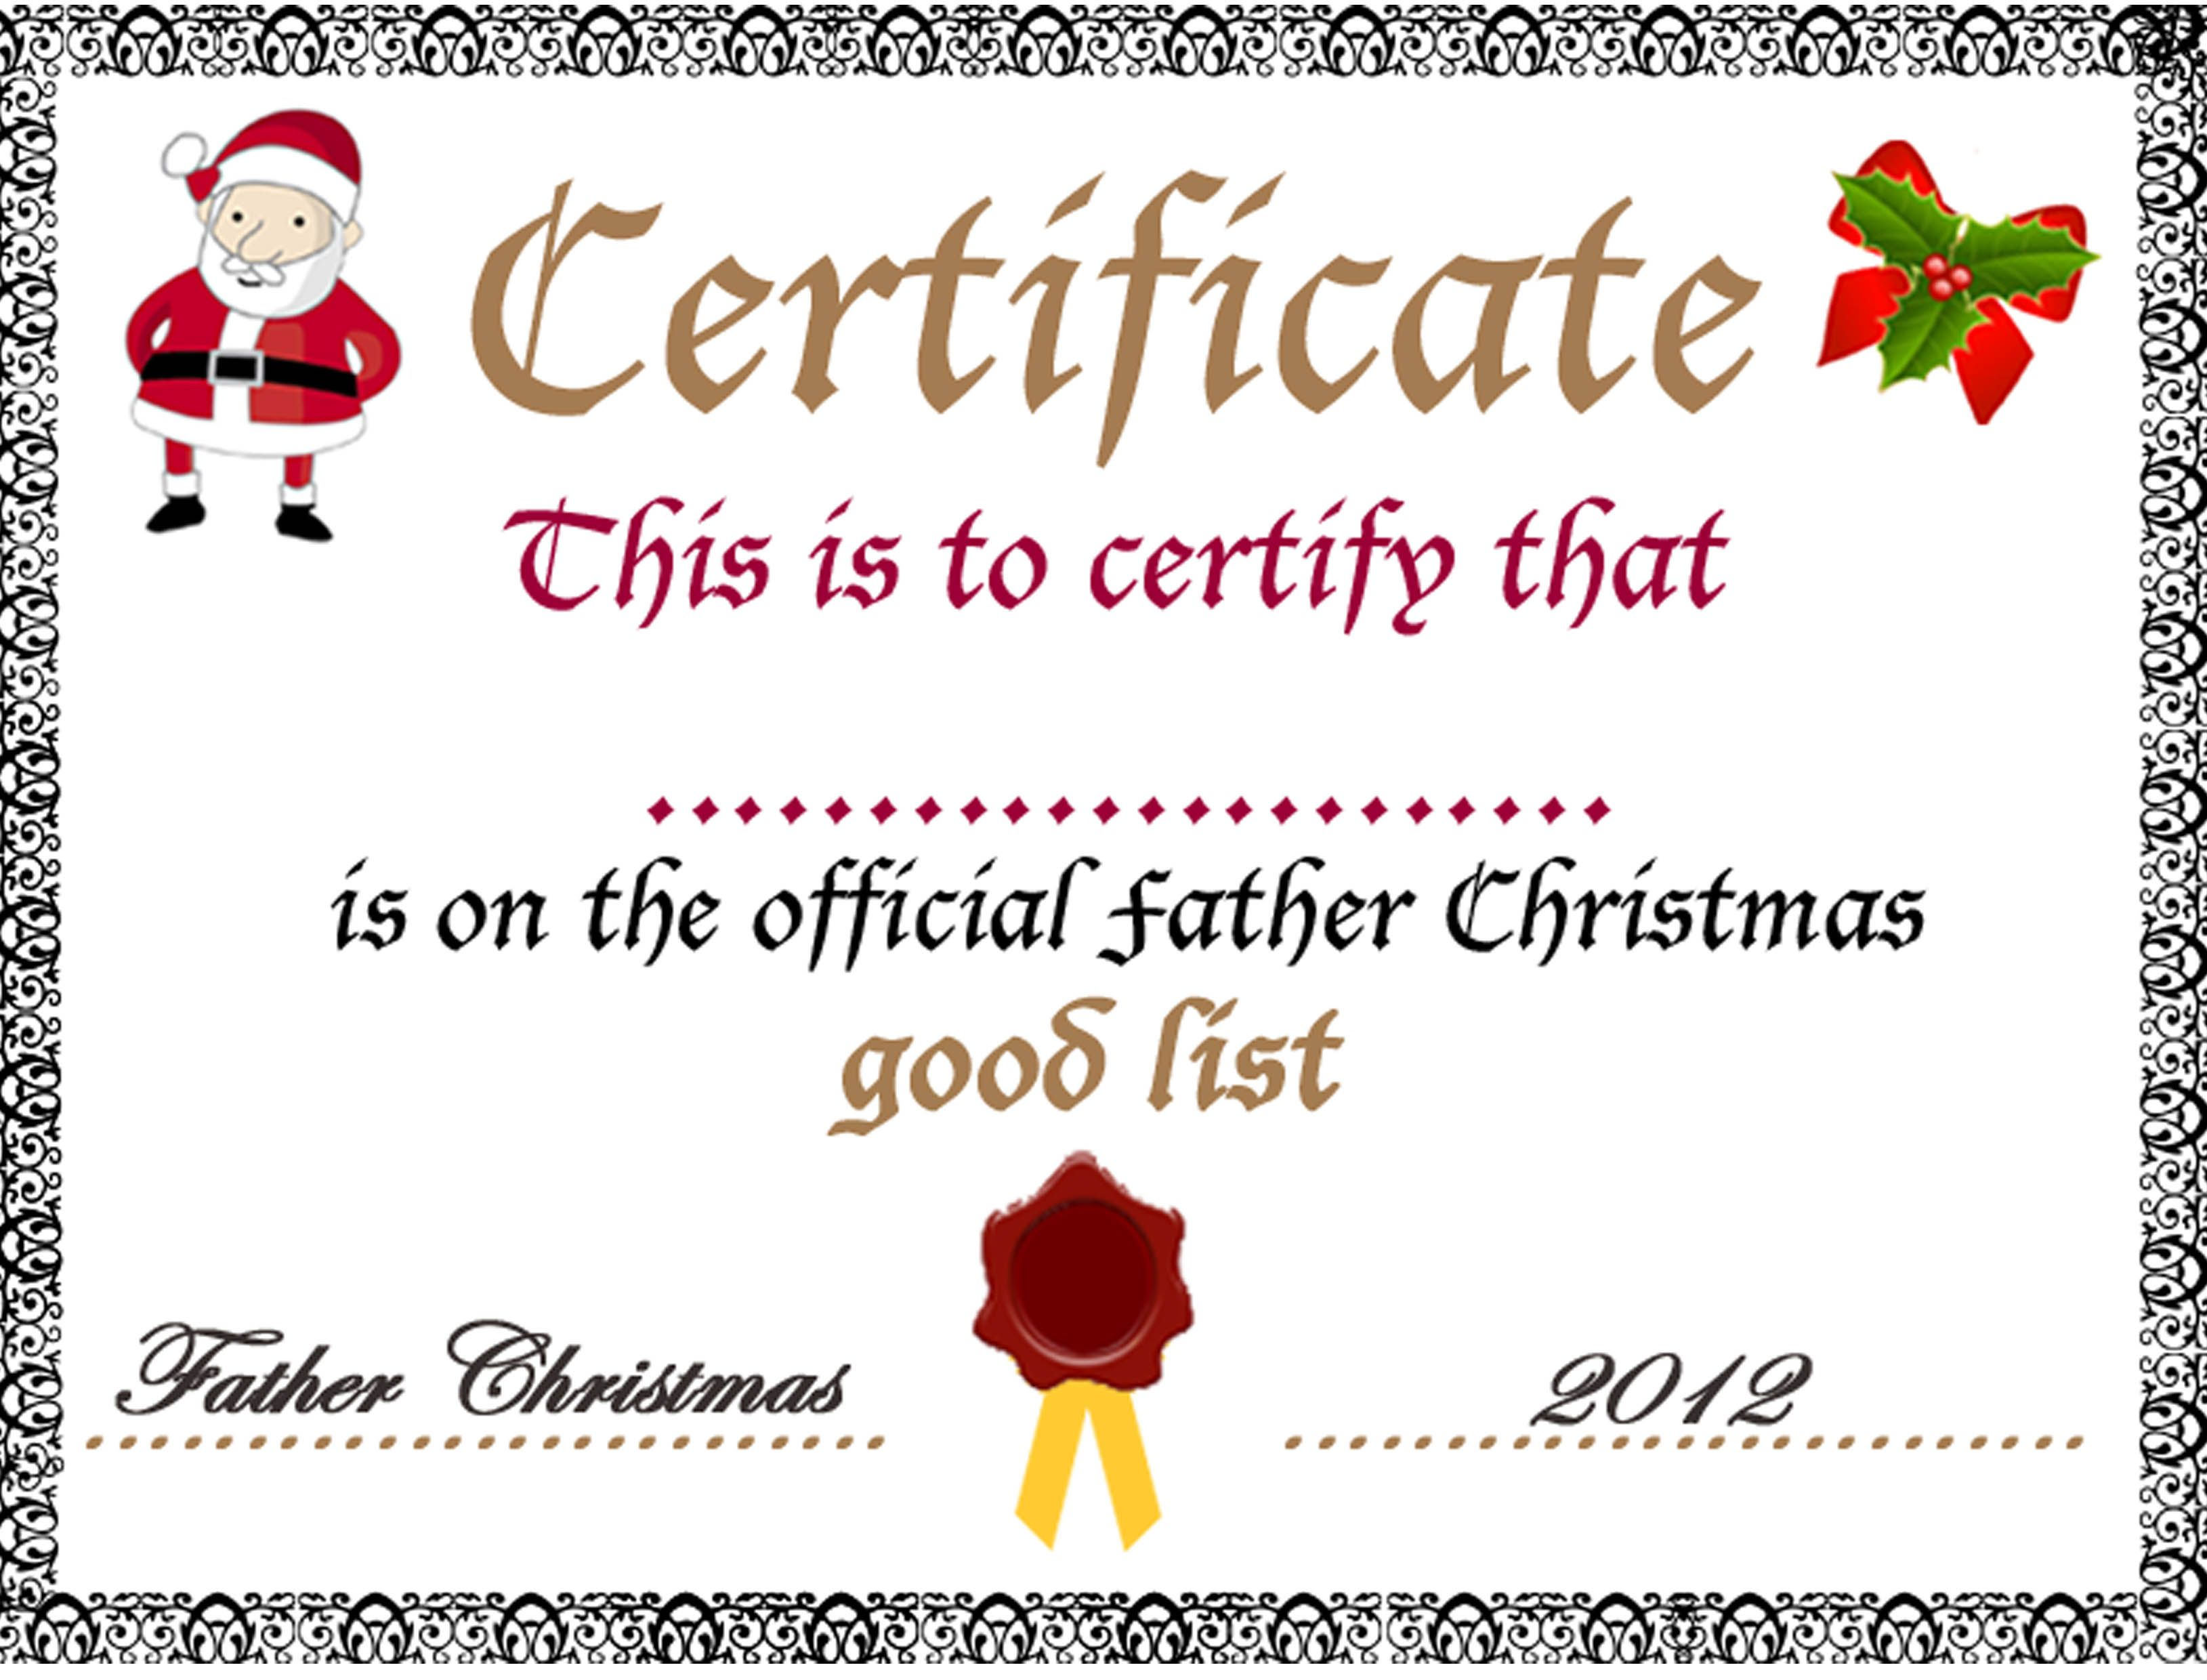 Good list certificate from father christmas free printable good list certificate from father christmas free printable template alramifo Choice Image